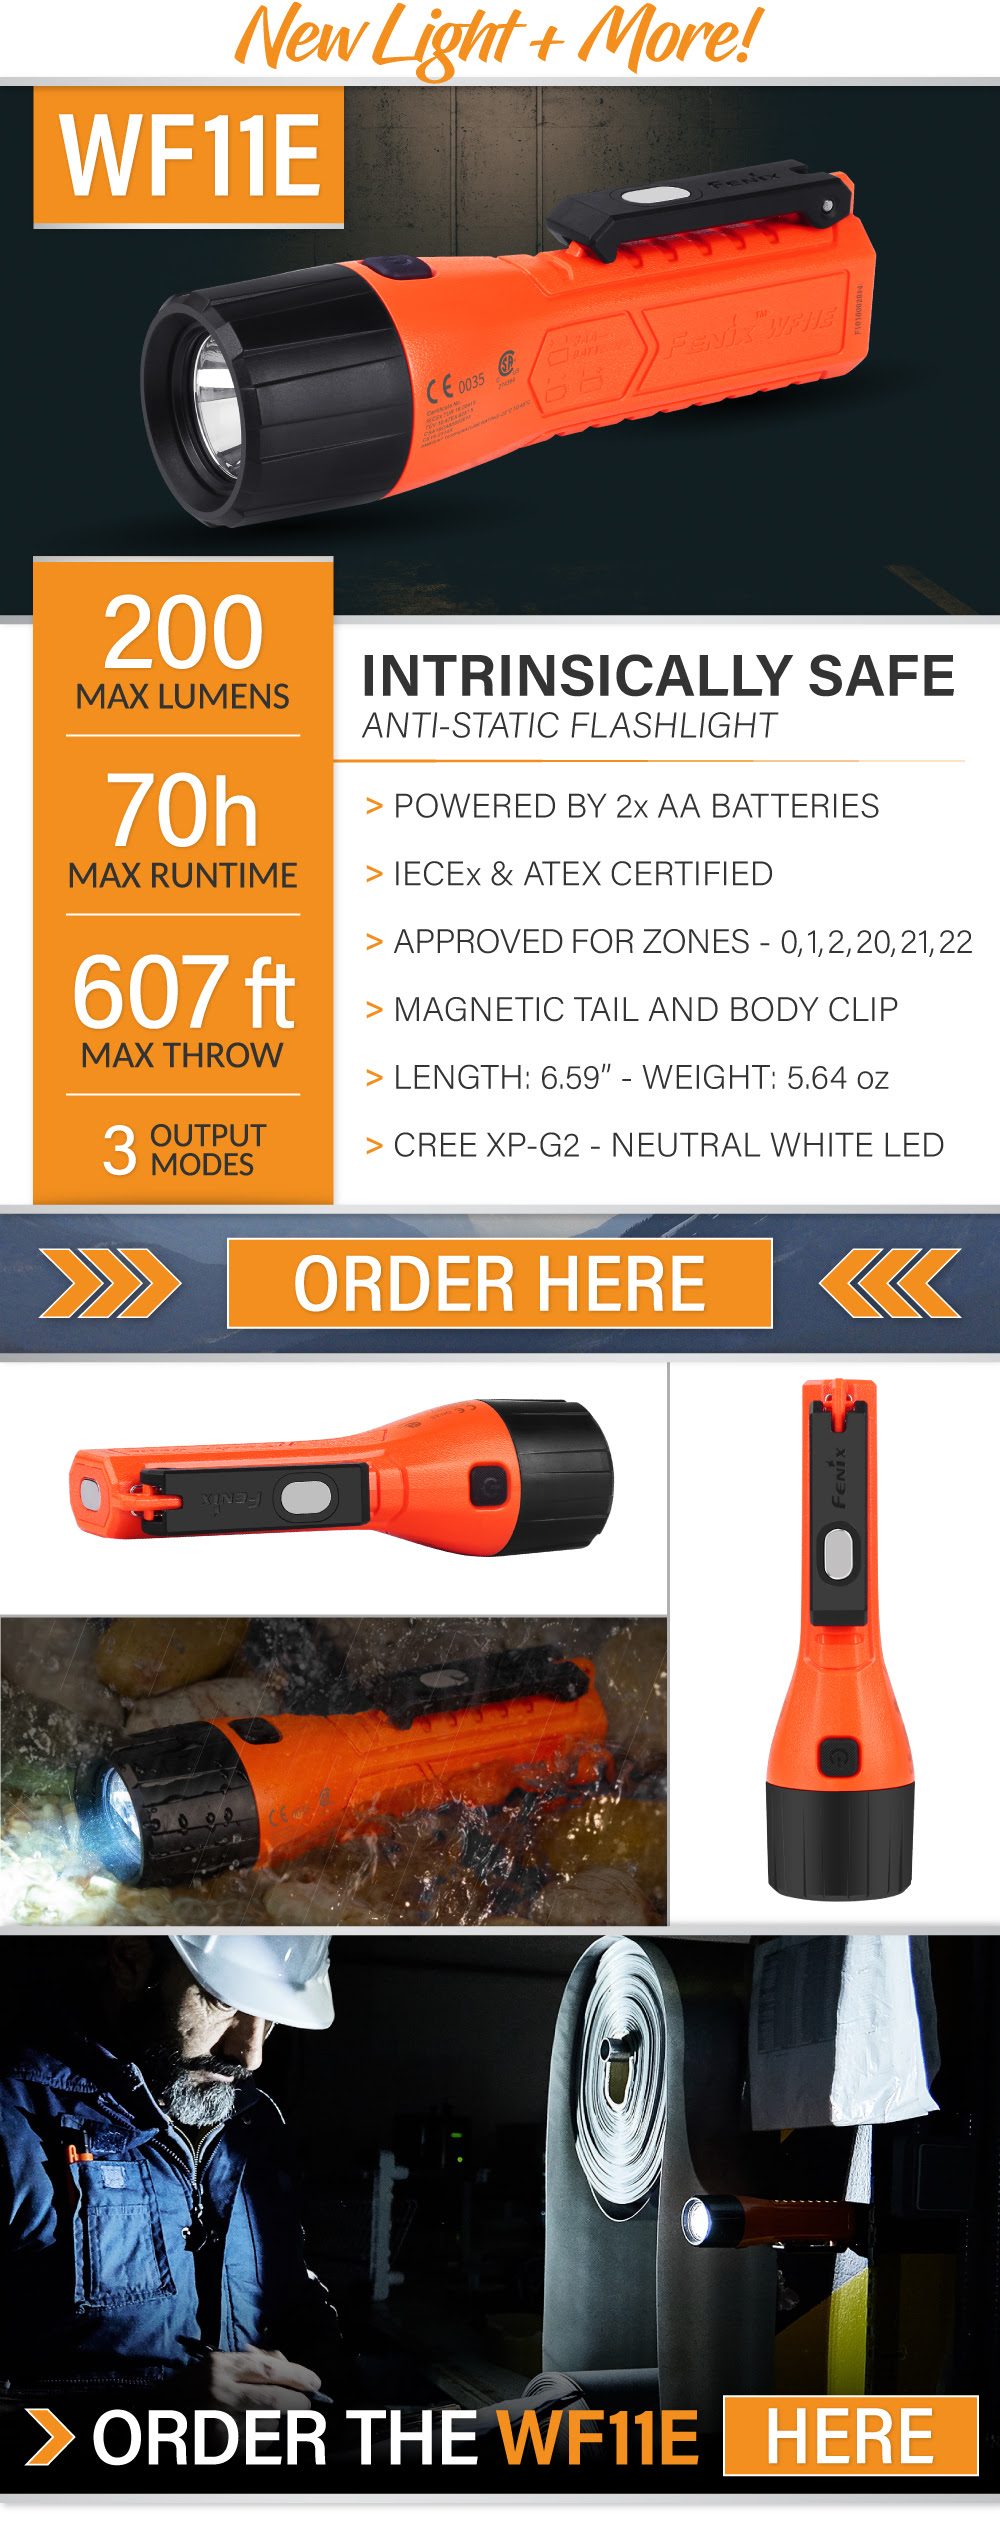 NEW Fenix WF11E - Intrinsically Safe Flashlight